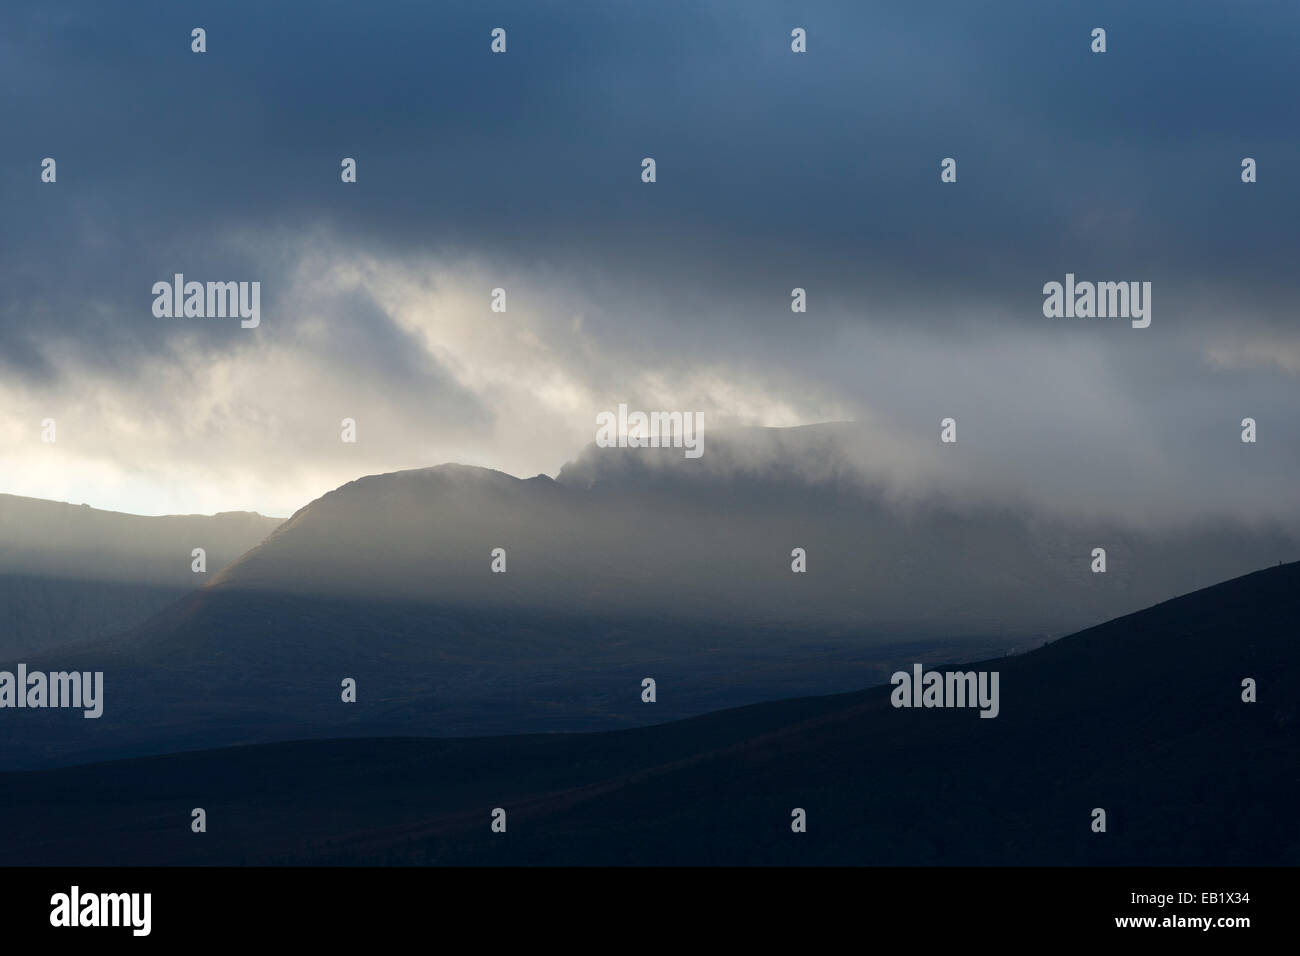 Storm clouds over Cairngorm mountains, Strathspey, Scotland - Stock Image